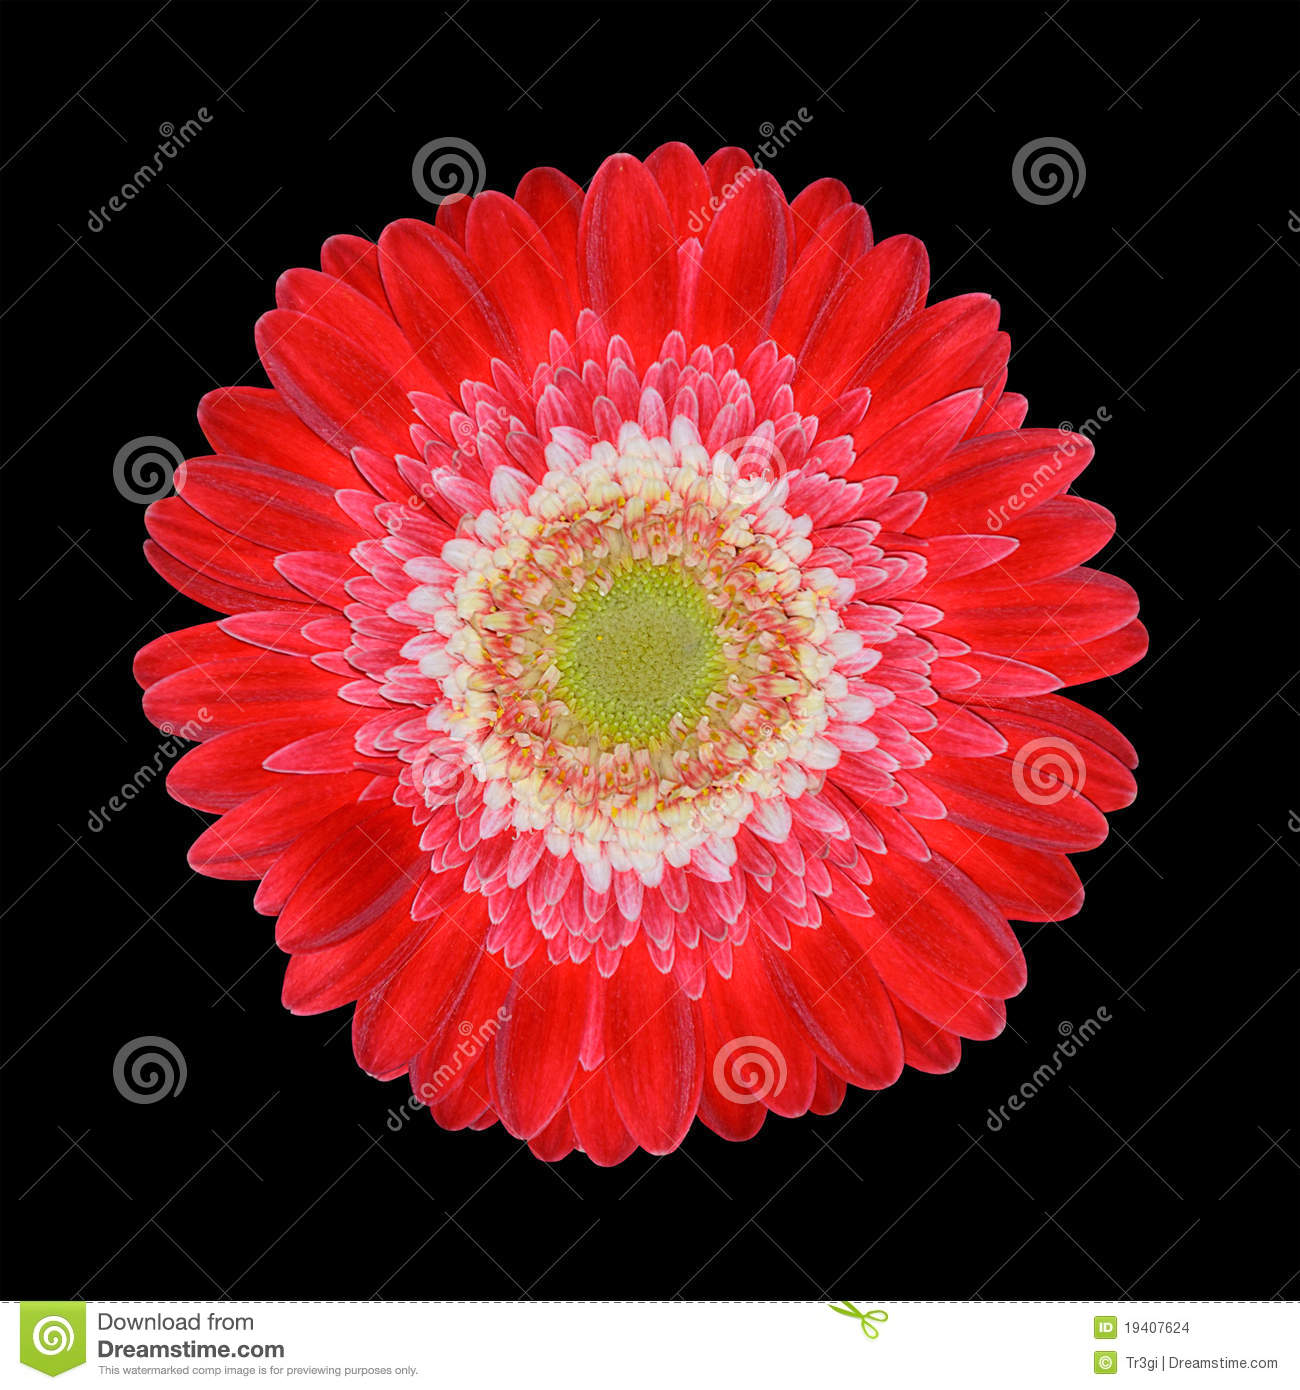 Perfect Red Gerbera Flower Head with White Center. Closeup Isolated on ...